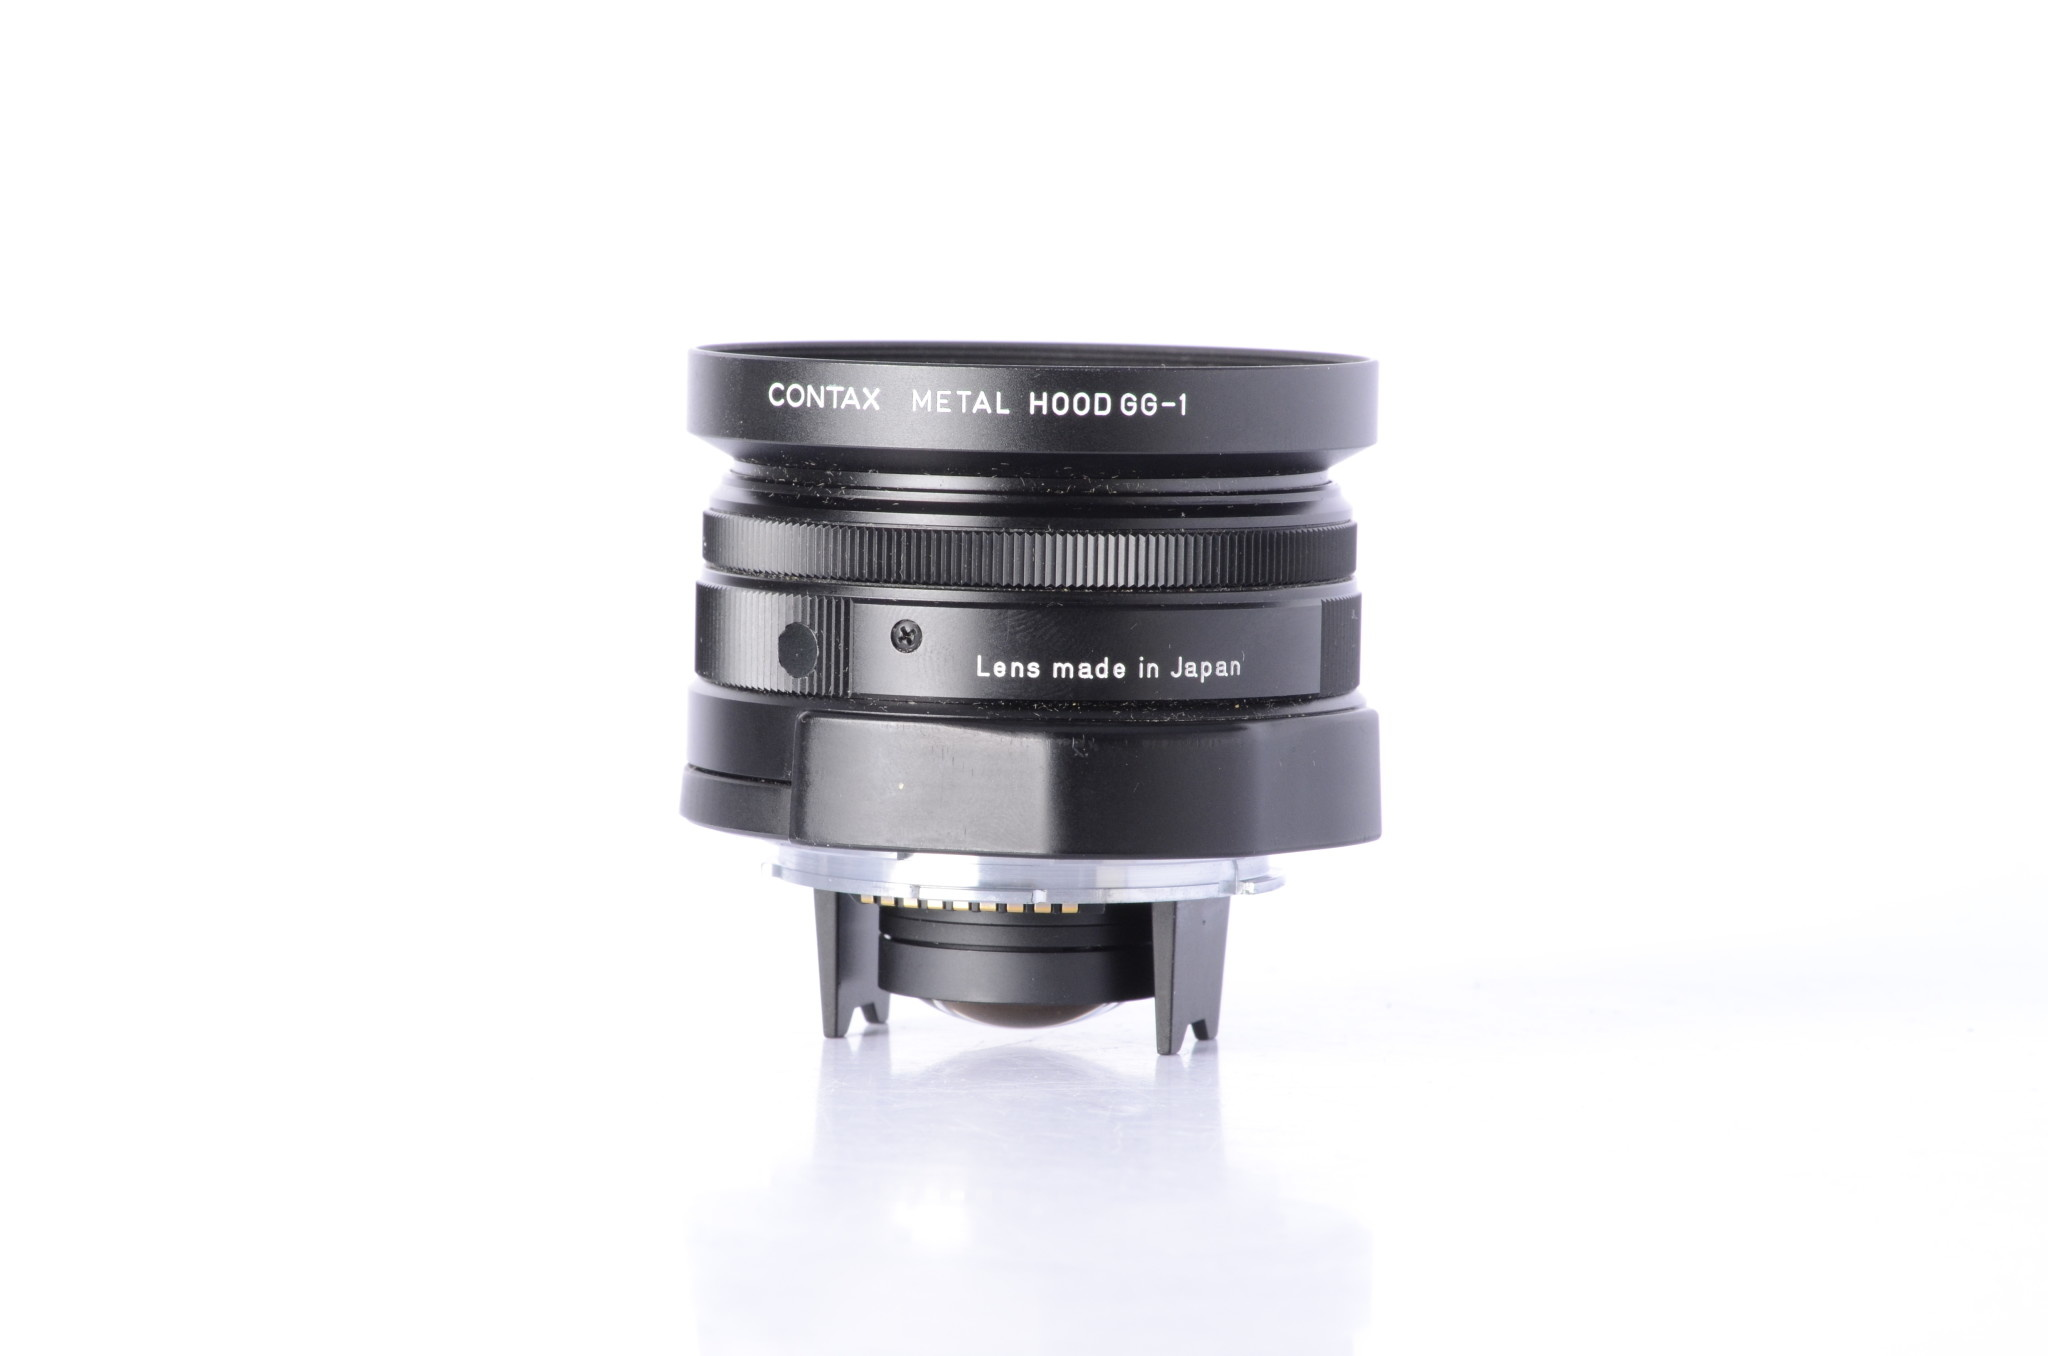 Contax Contax 28mm f/2.8 Black for G1 G2 SN: 7851775